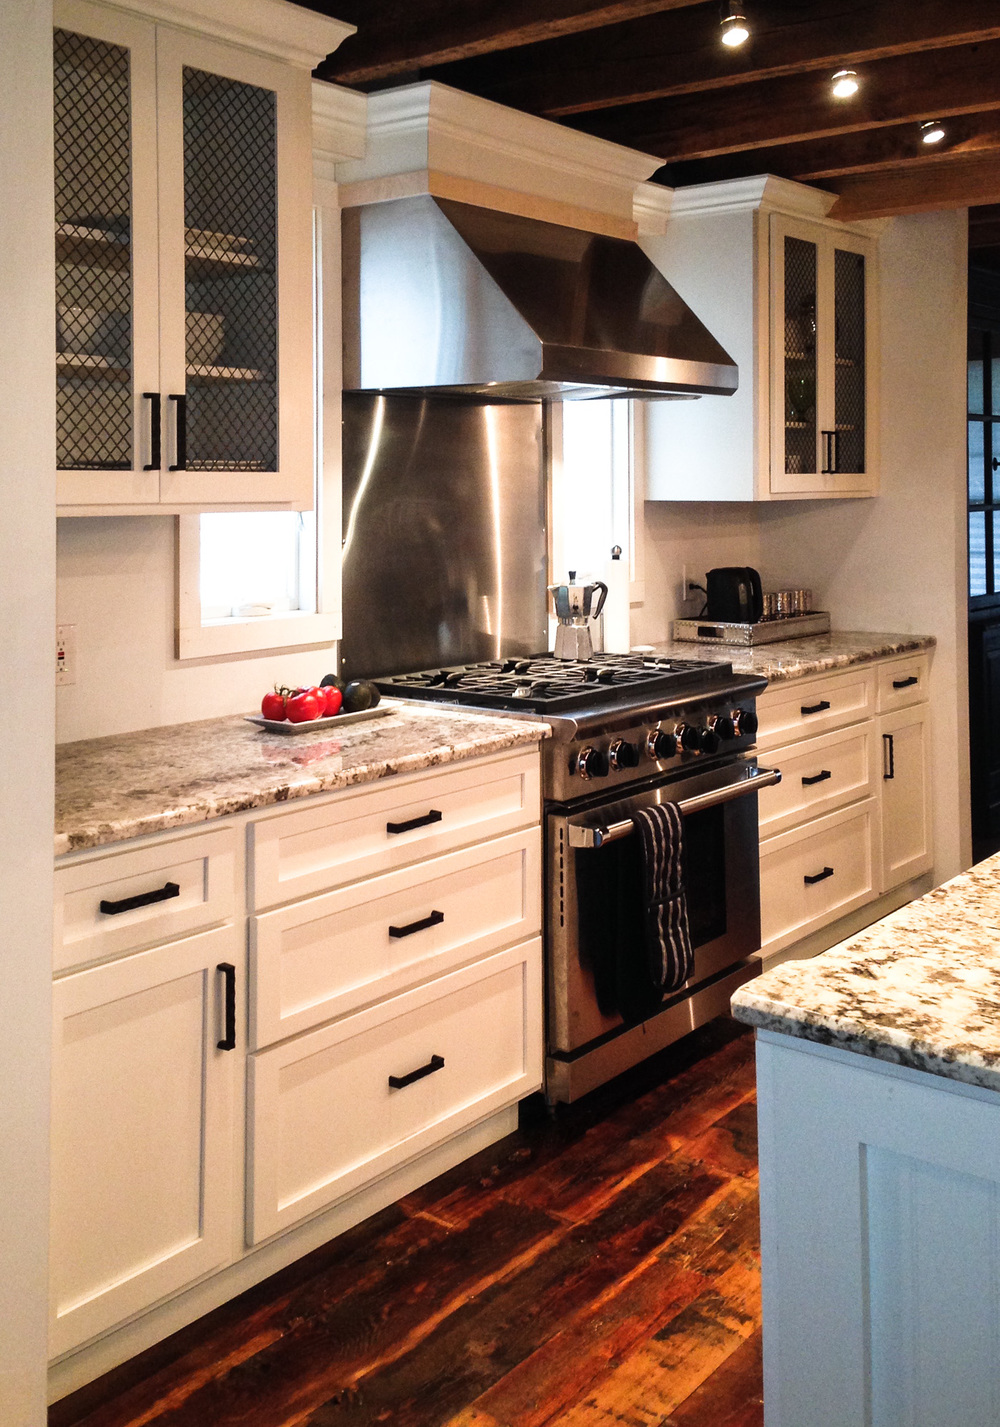 Farmhouse Kitchen - Countertop & Range